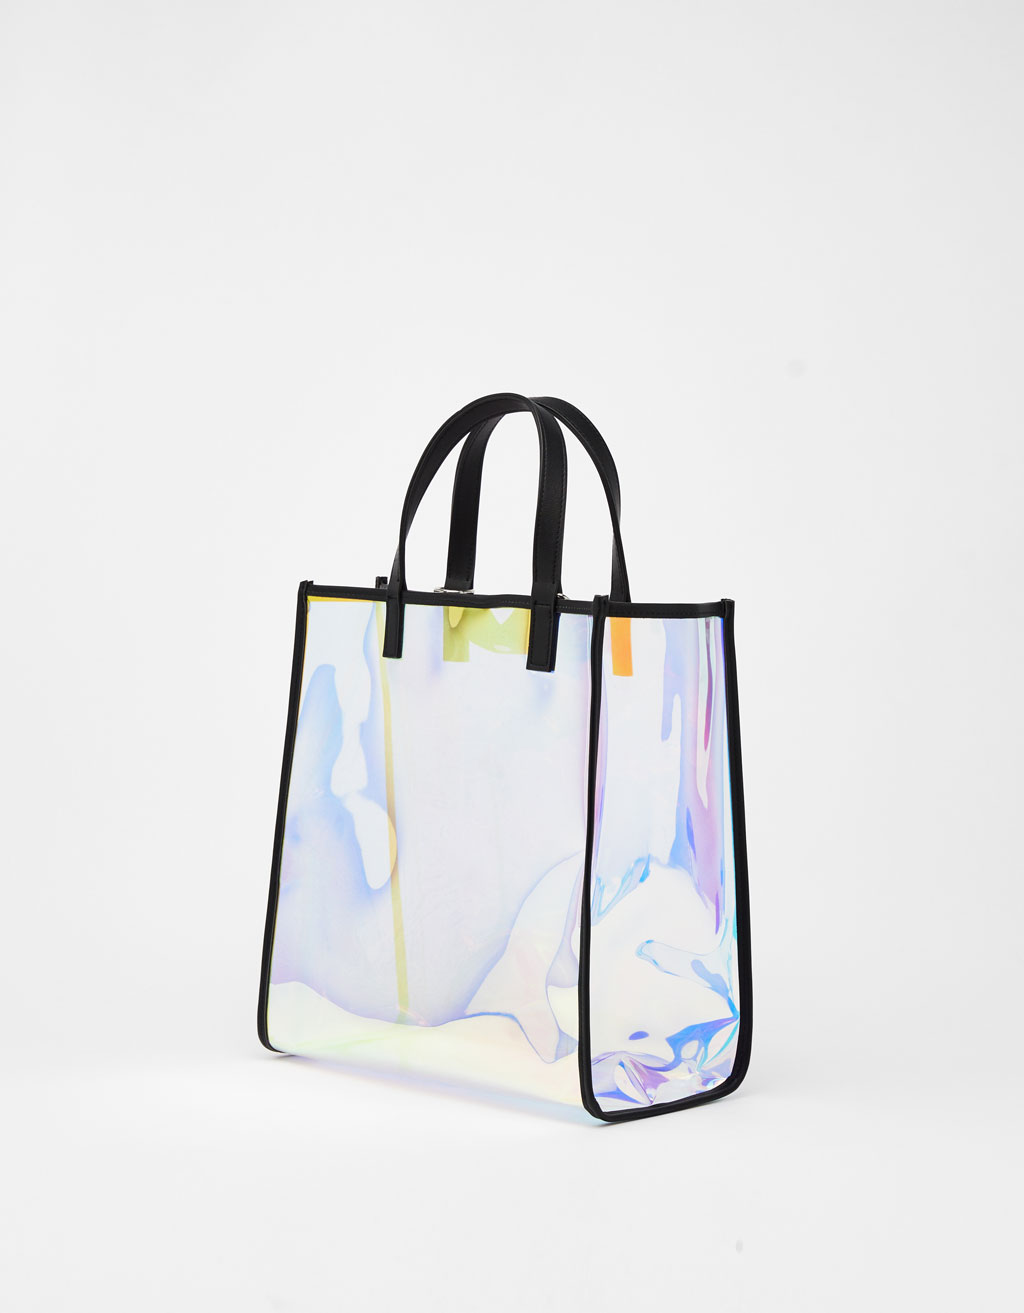 Iridescent tote bag